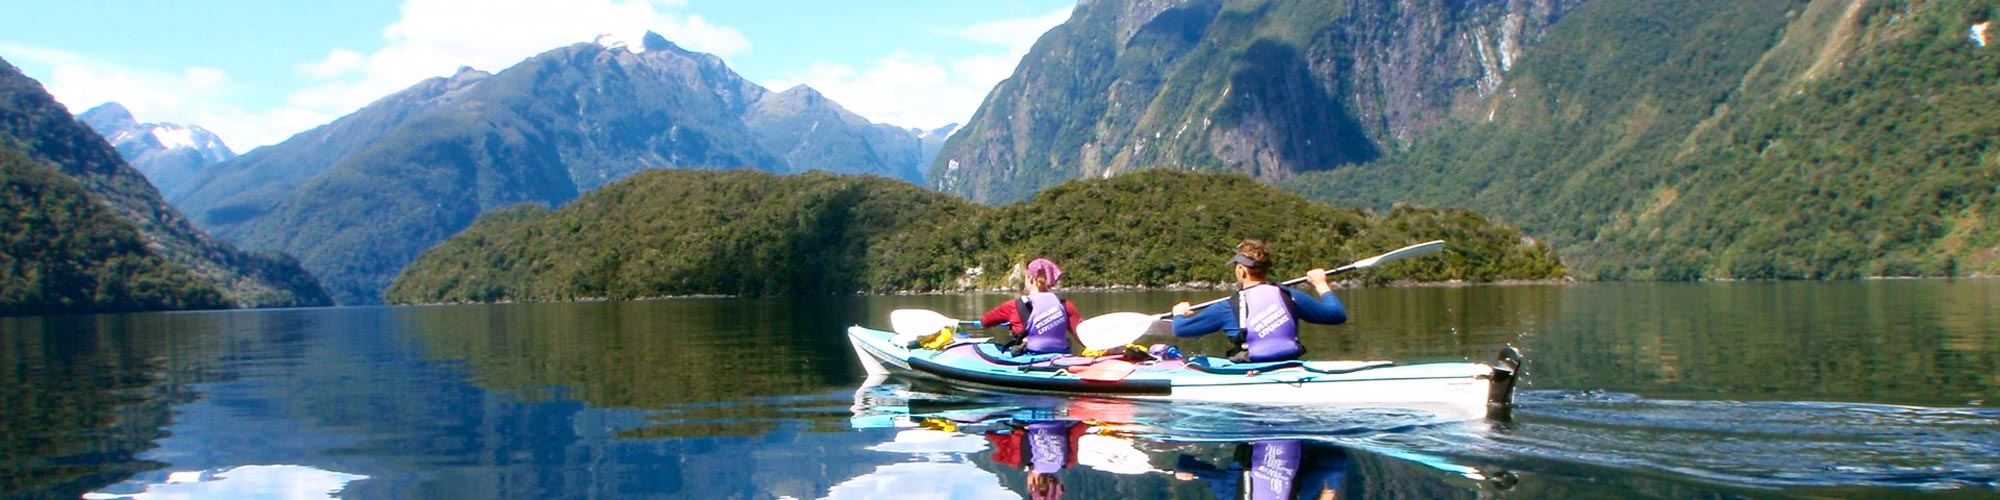 Kayak Nature Tour New Zealand Banner